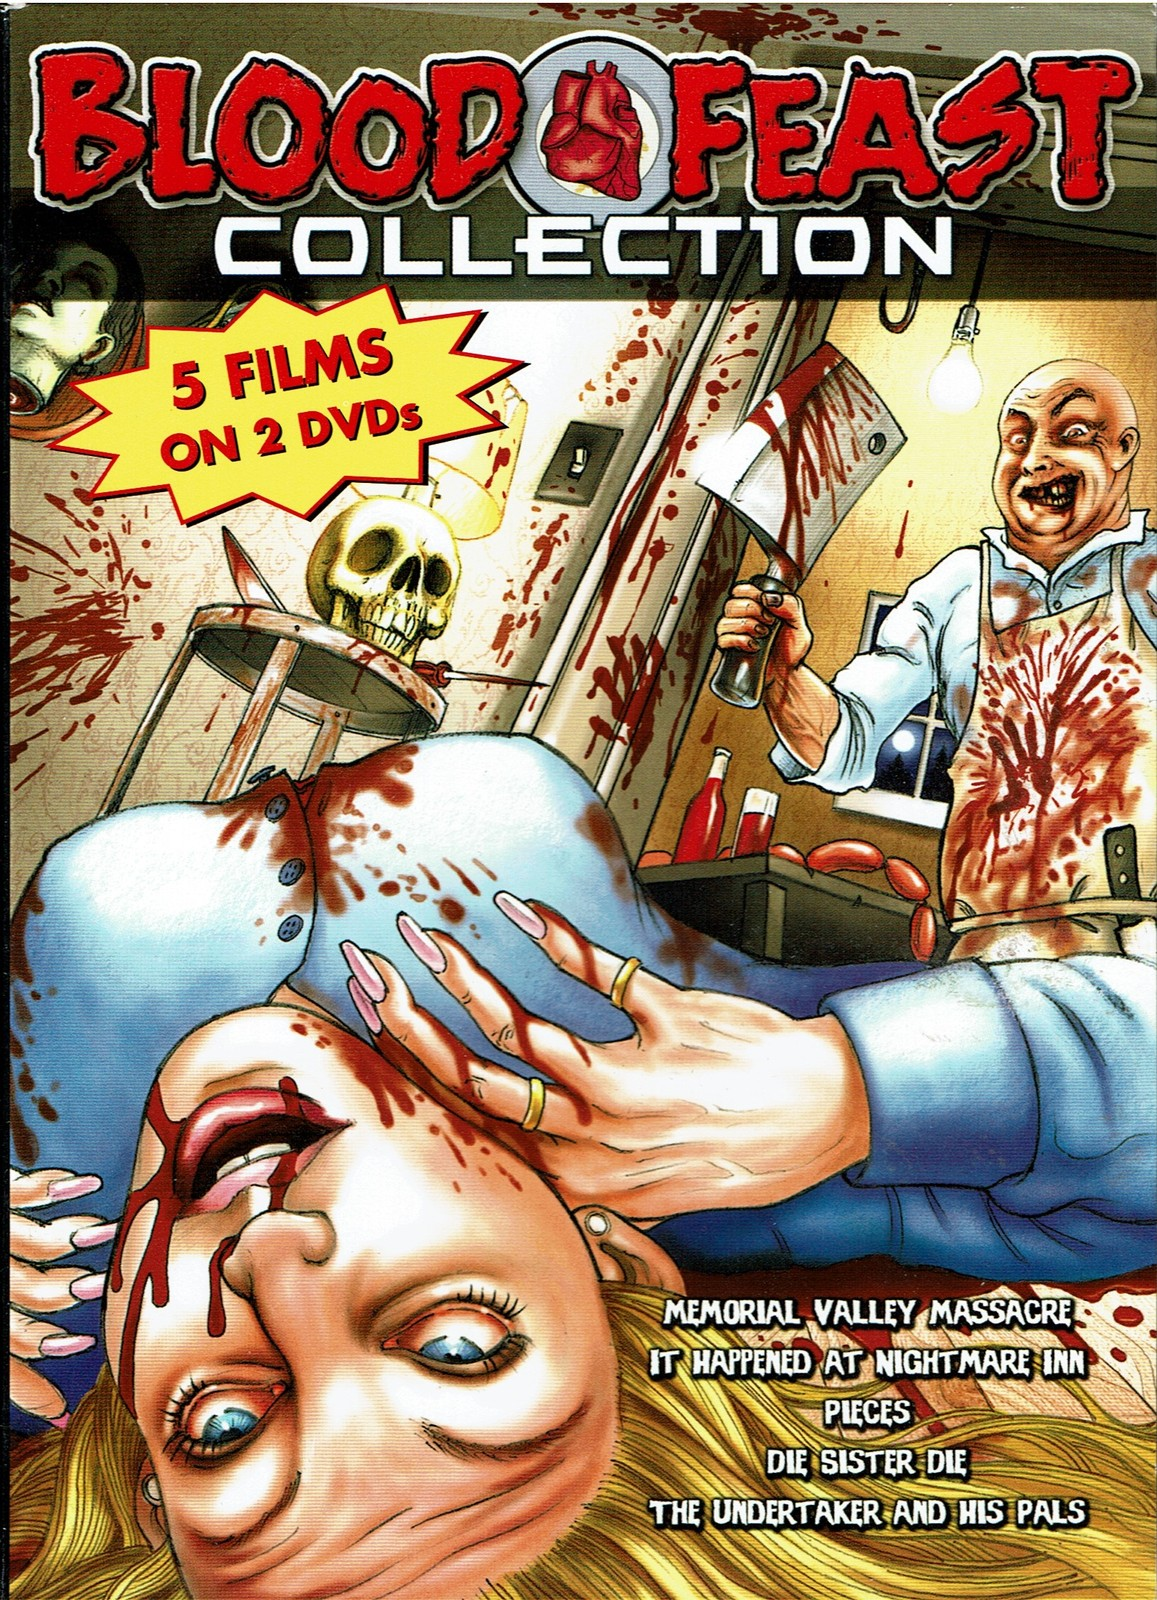 Blood Feast Collection, 5 Classic Horror Films on 2 DVD set (Region 0 Worldwide)